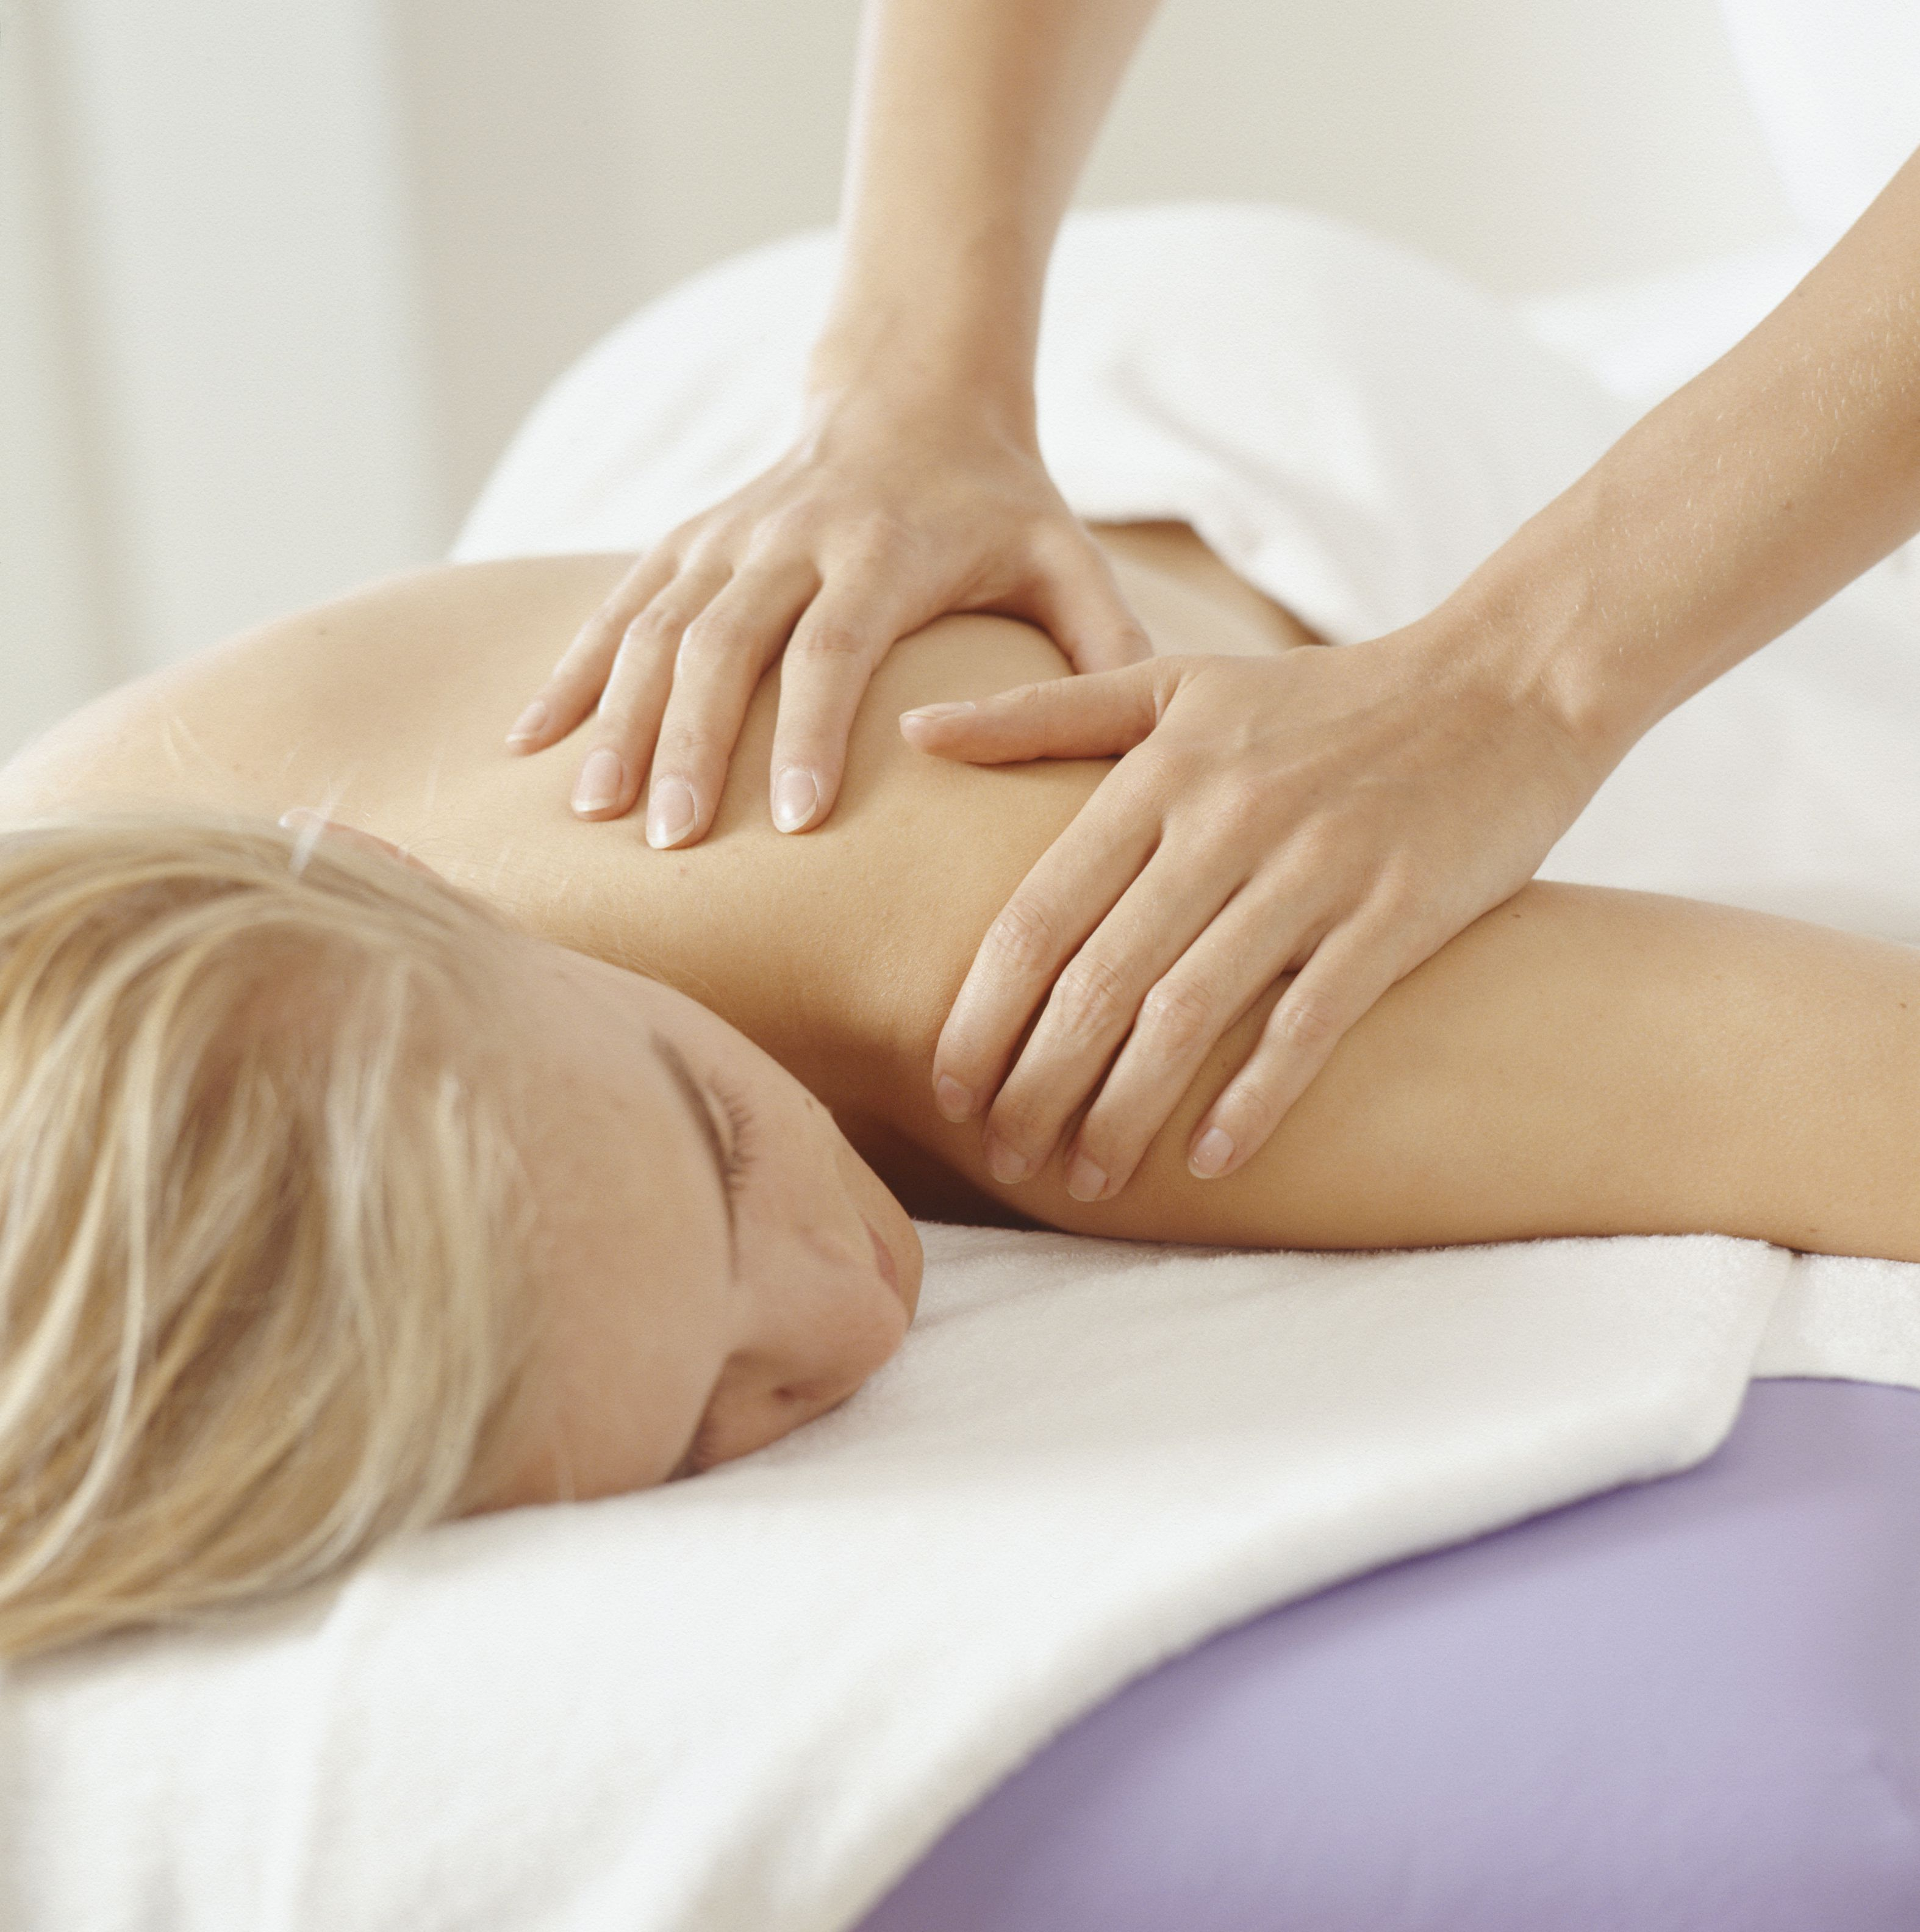 Get a Rejuvenating Massage - Enjoy Good Health And Well-being